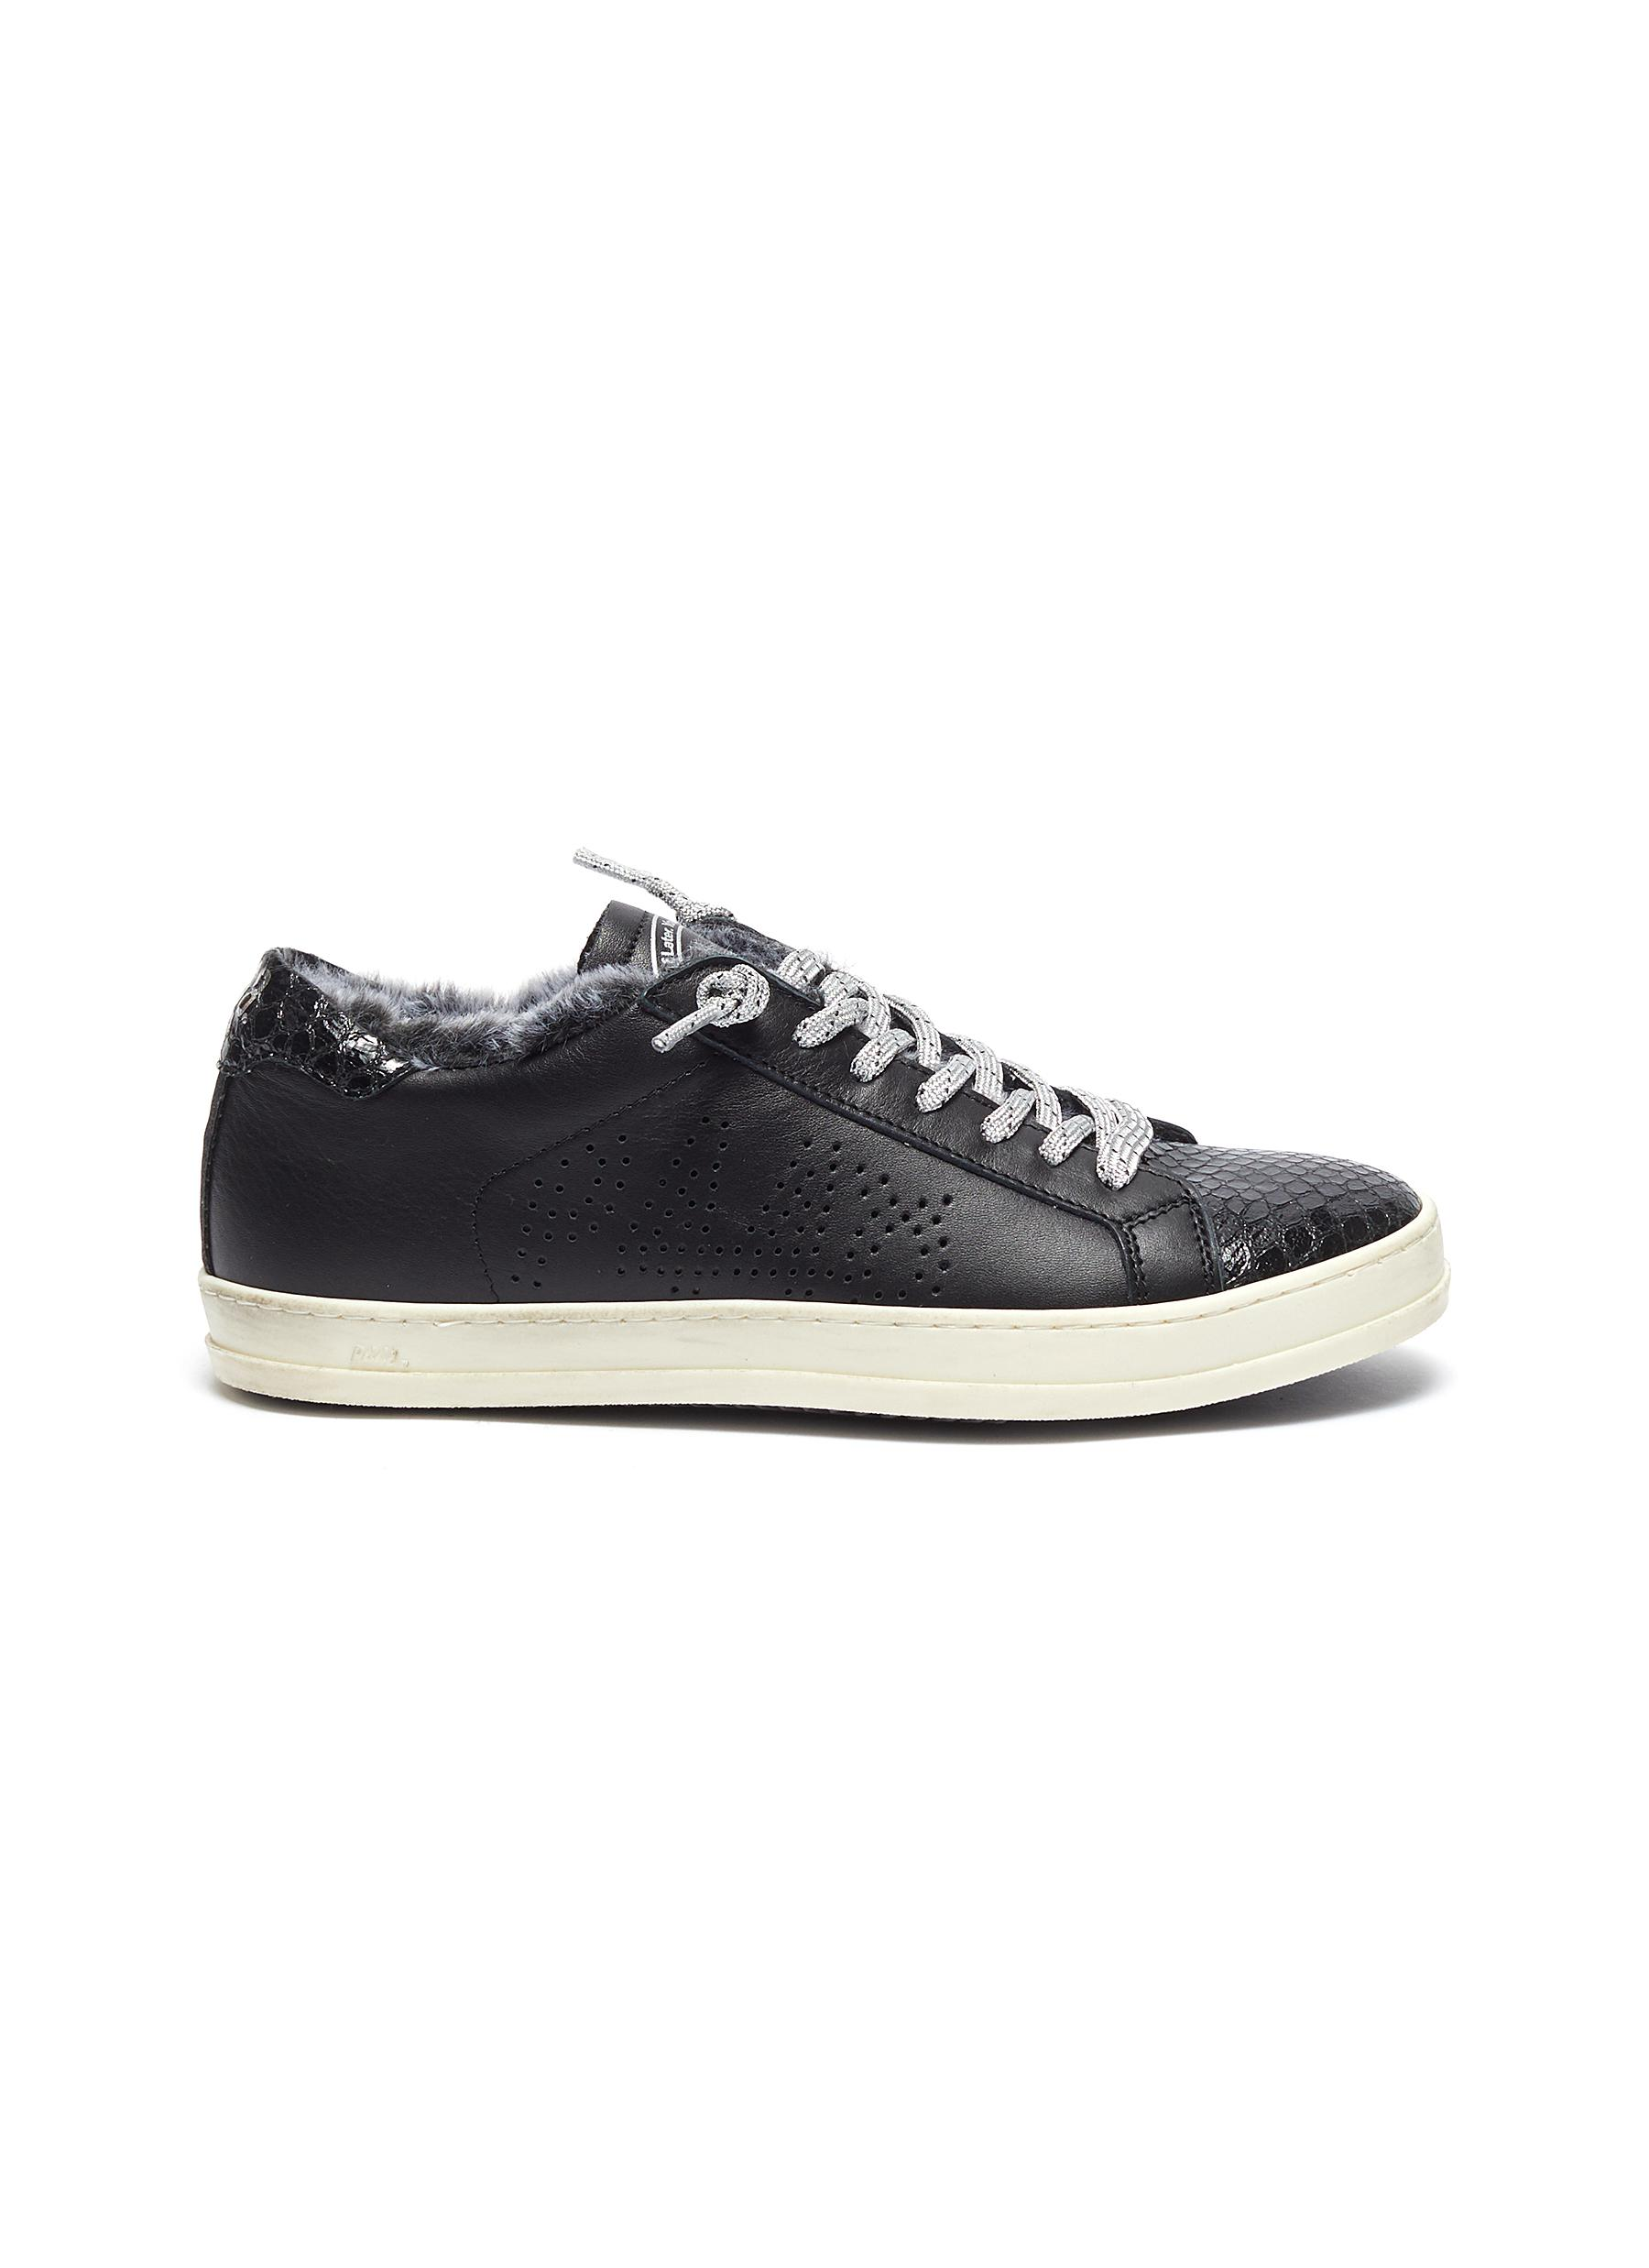 John fur trim leather low top sneakers by P448